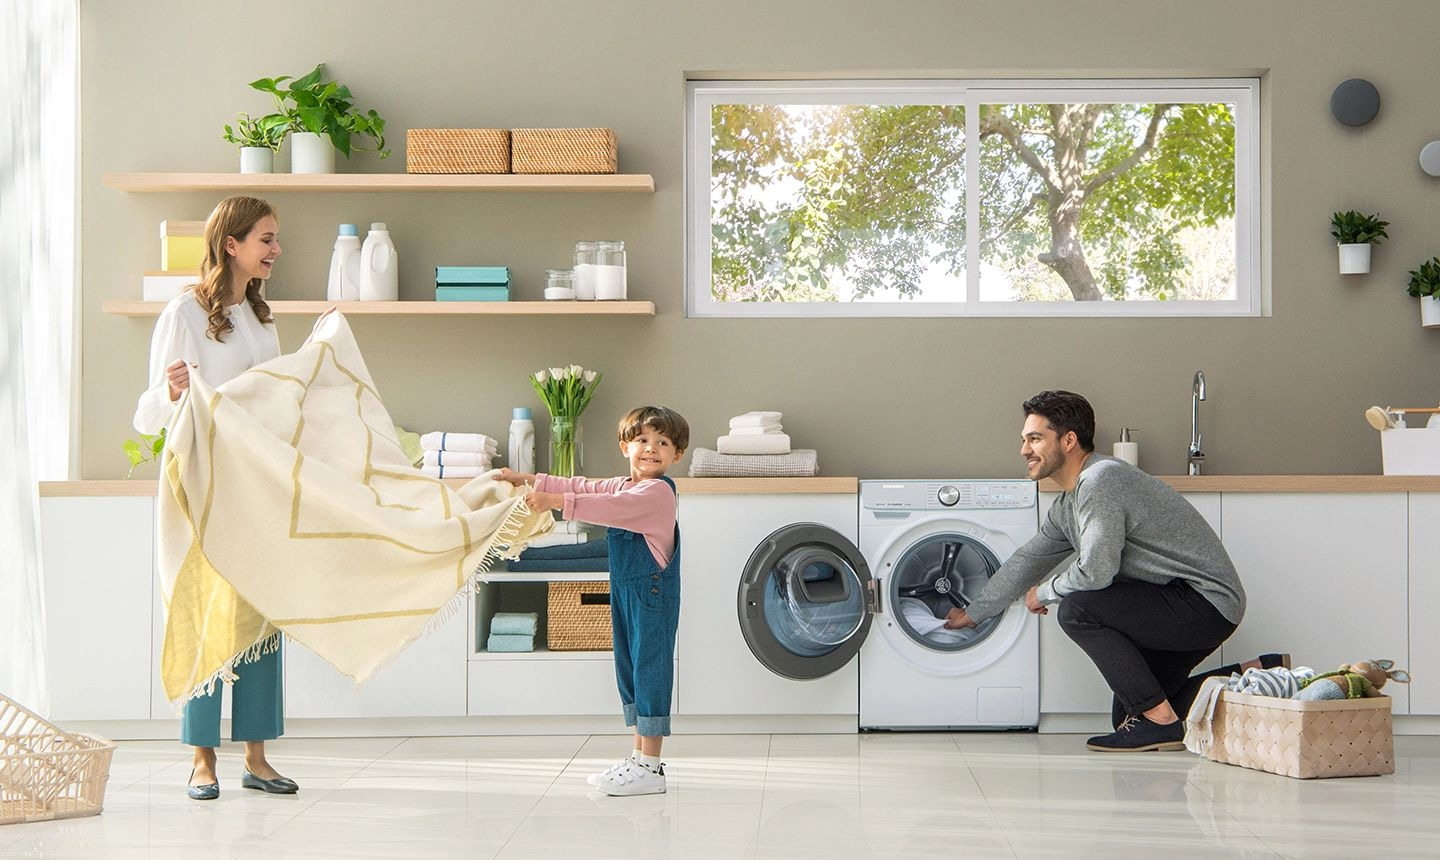 A mother, father and a young son are finishing a load of laundry. The mother and son are joyfully folding a yellow blanket while the father is kneeling by the Samsung QuickDrive™, taking out finished laundry.